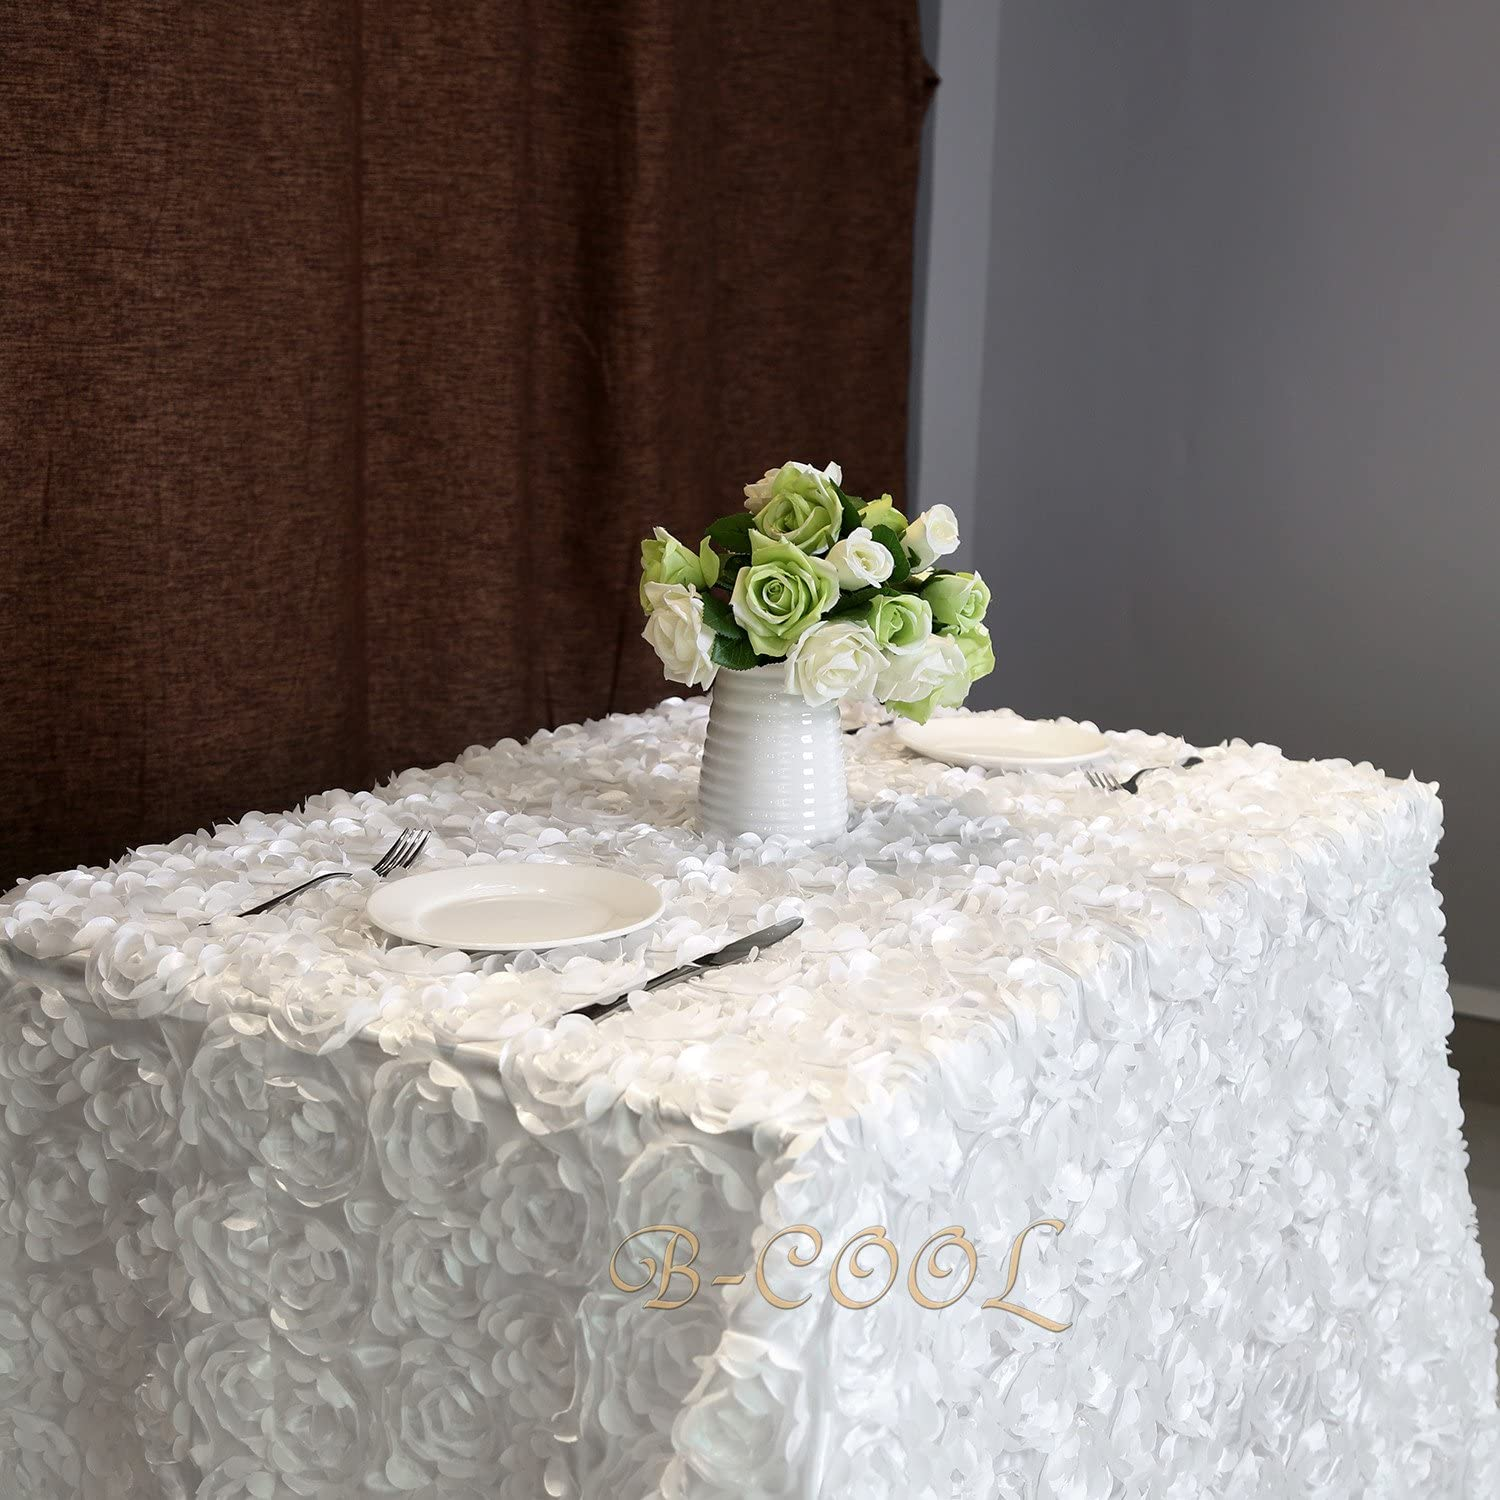 B-COOL pinktte white tablecloth pinktte Florals Satin Rectangular Tablecloth For Wedding Party 90 x156